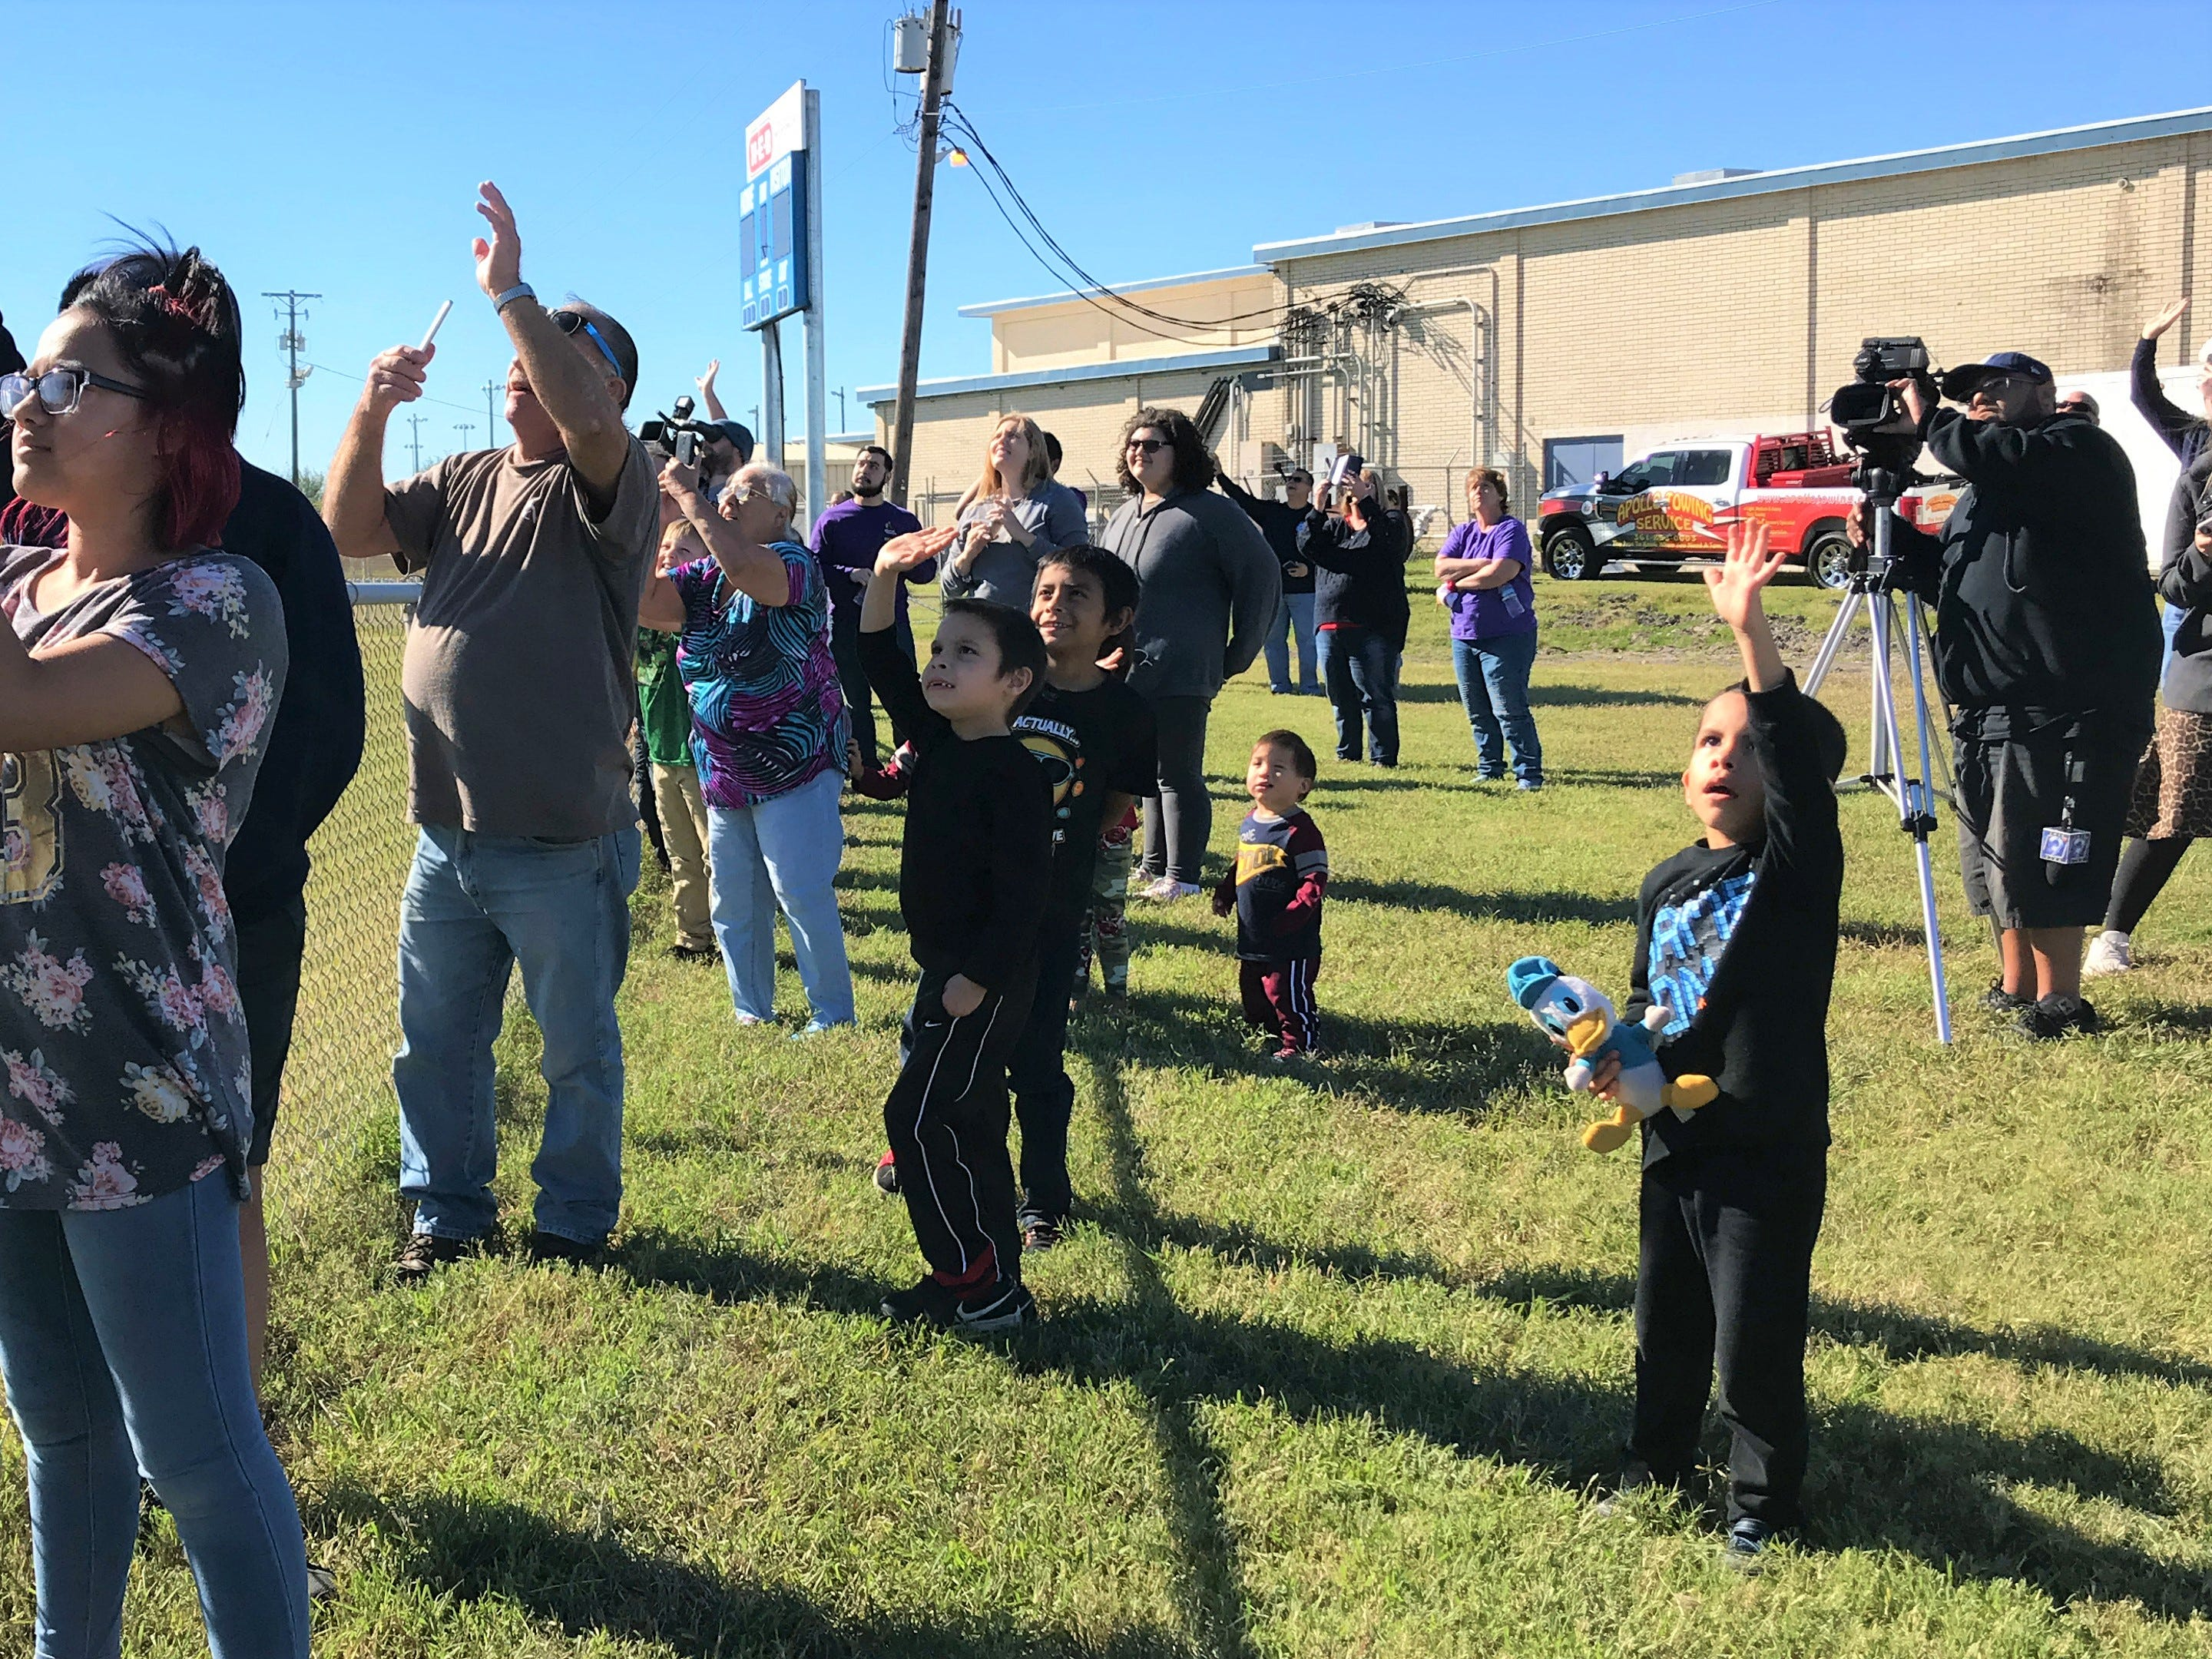 Parents and children wave at Blue Santa in a U.S. Coast Guard helicopter as he lands at the Boys and Girls Club of the Coastal Bend on Saturday, Dec. 15, 2018.